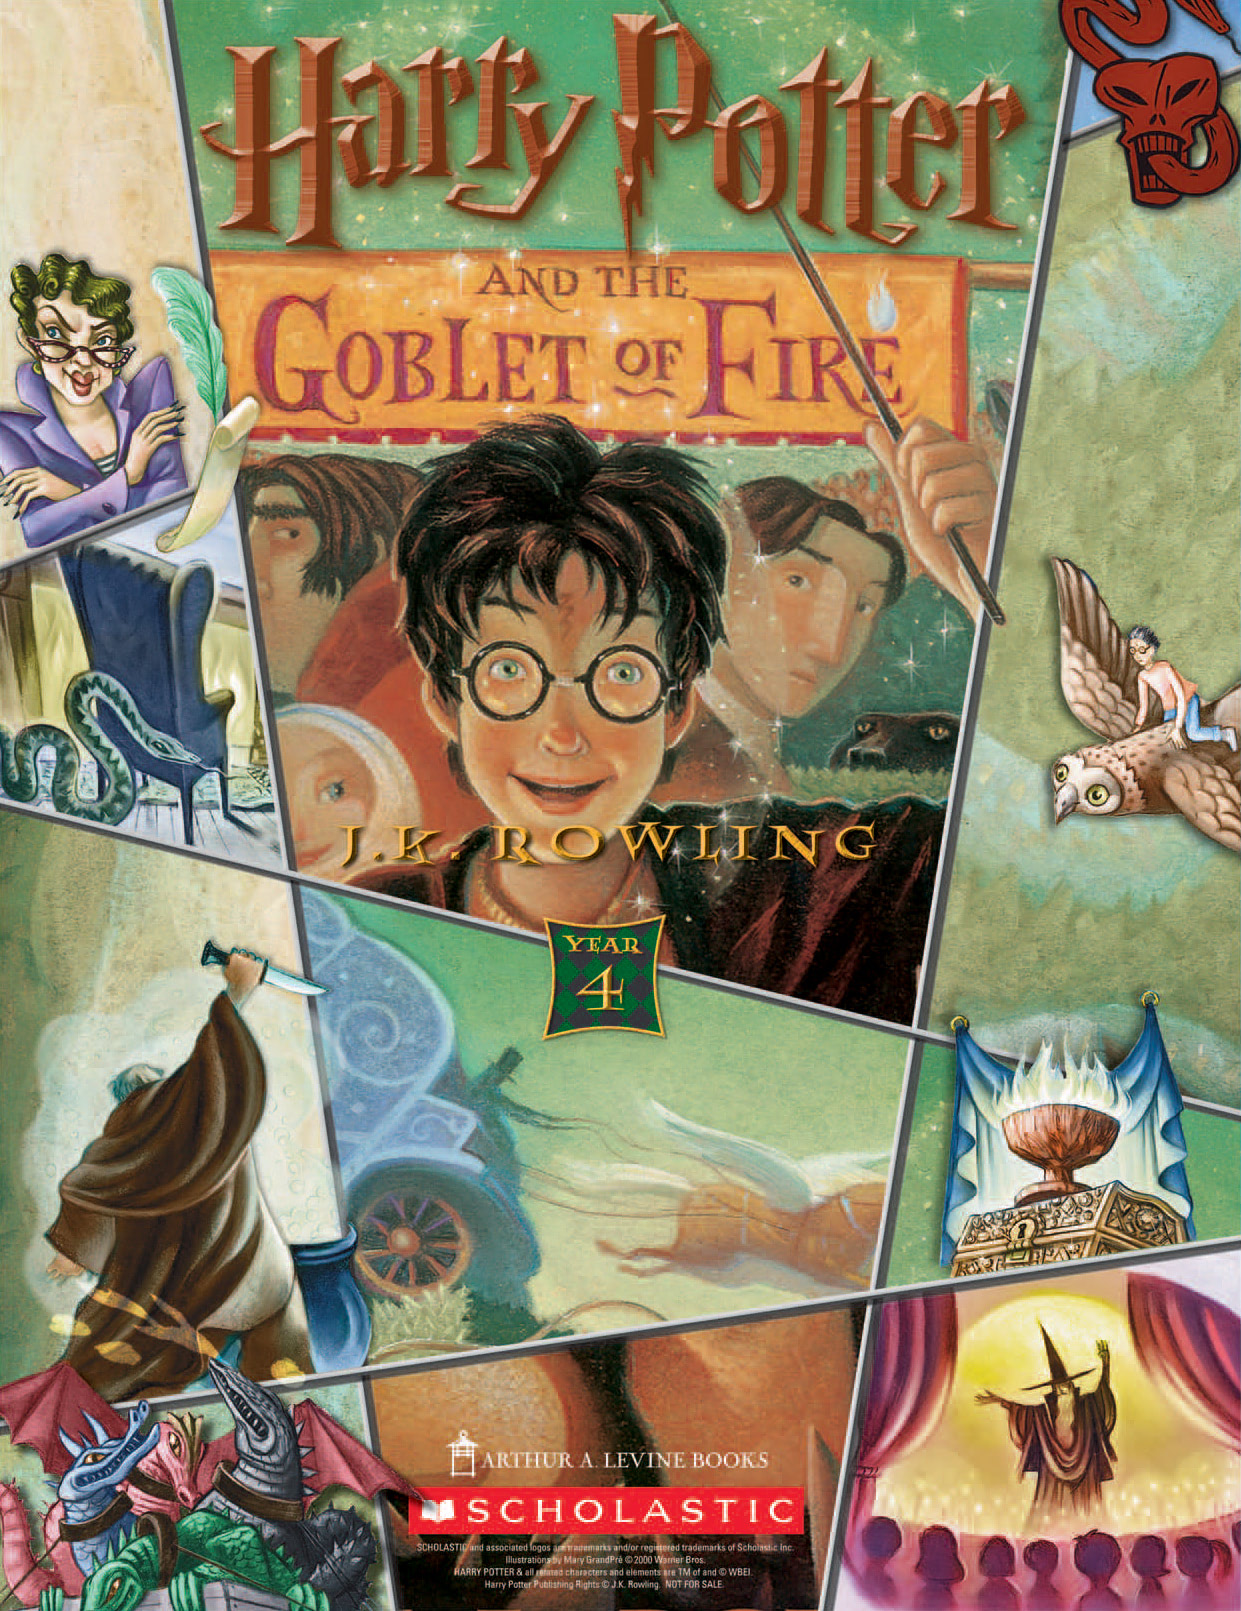 'Goblet of Fire' (Year 4) Scholastic promotional poster